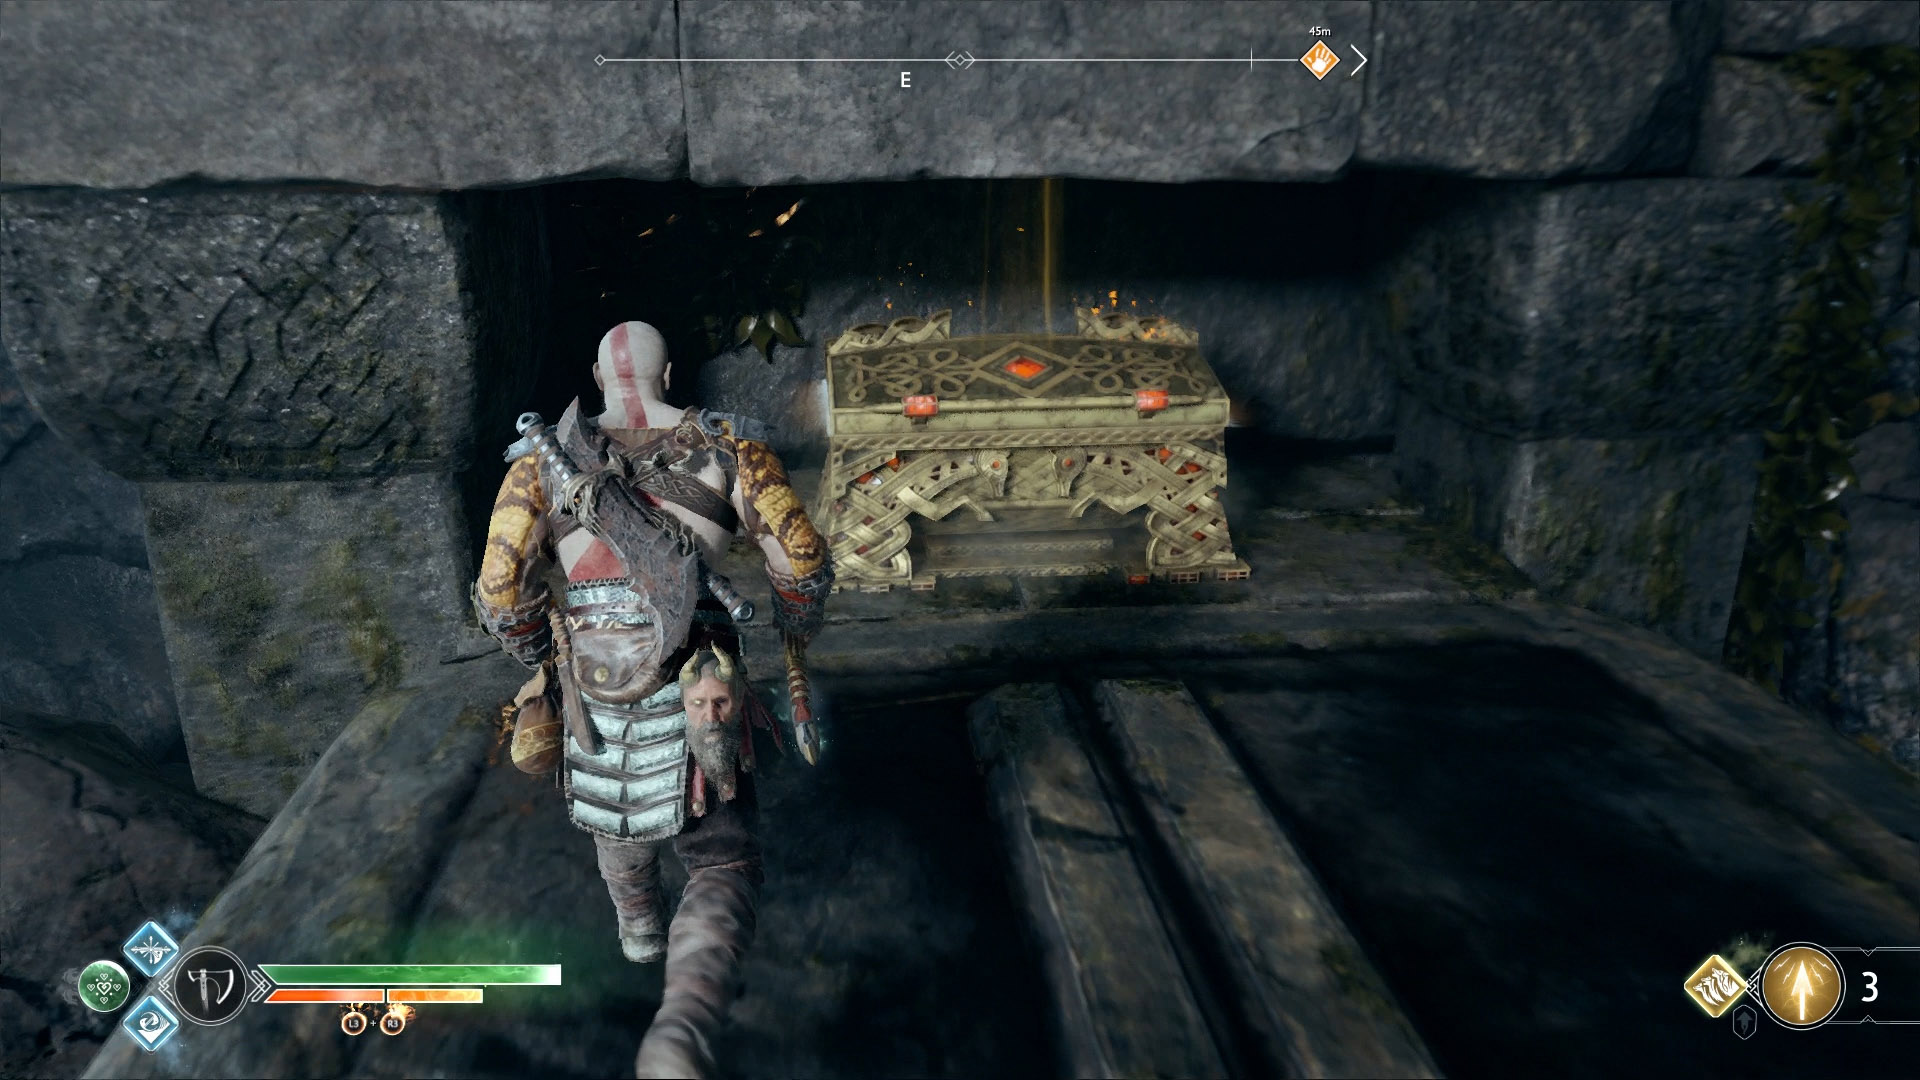 All Legendary Chest Locations In God Of War Shacknews